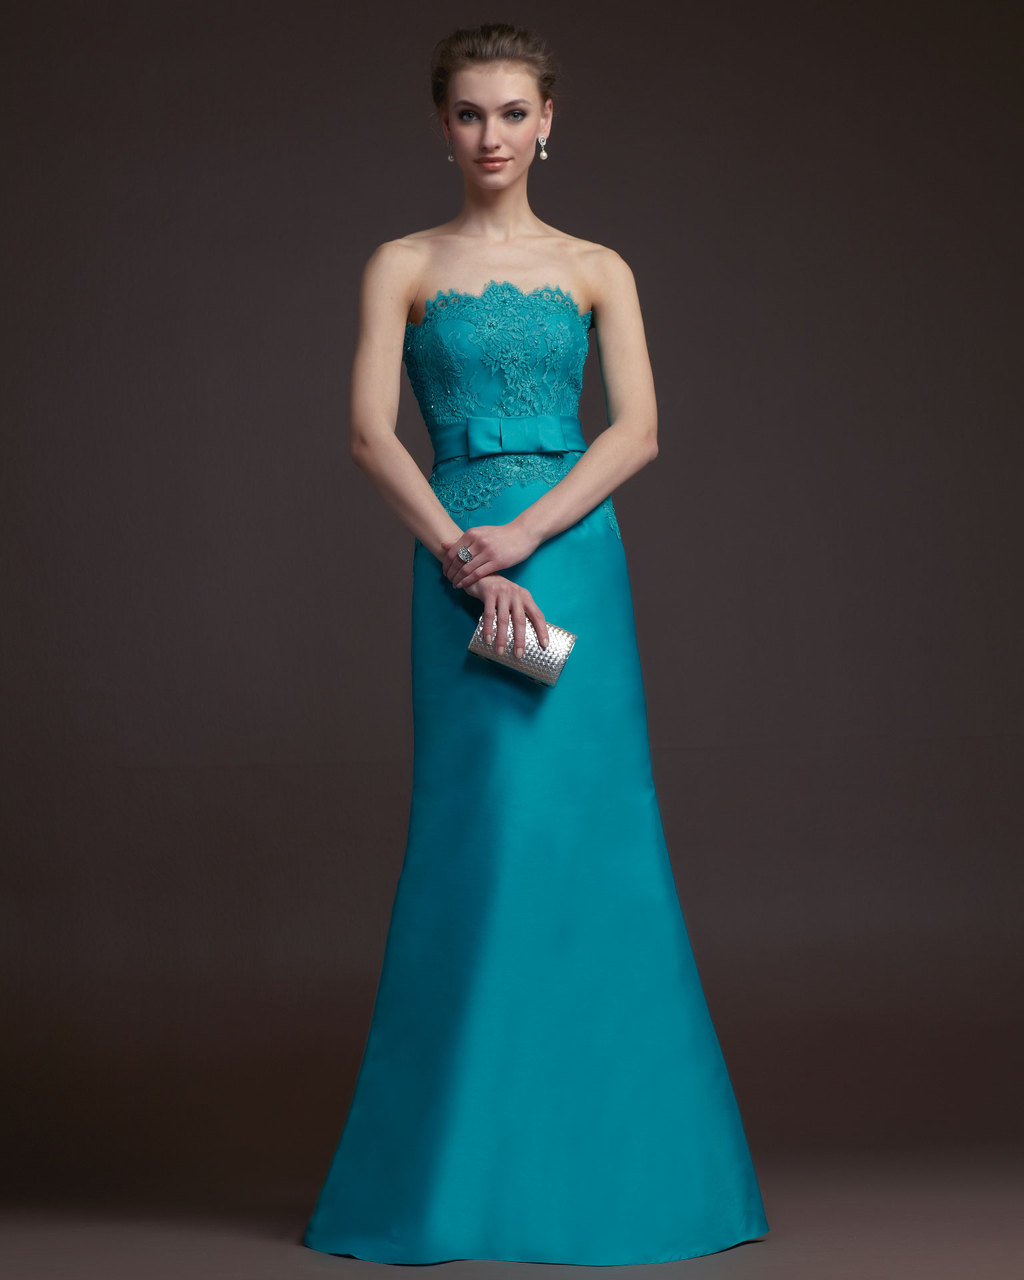 Gorgeous-2014-bridesmaid-dresses-from-aire-barcelona-teal-mermaid-with-lace-bodice.full